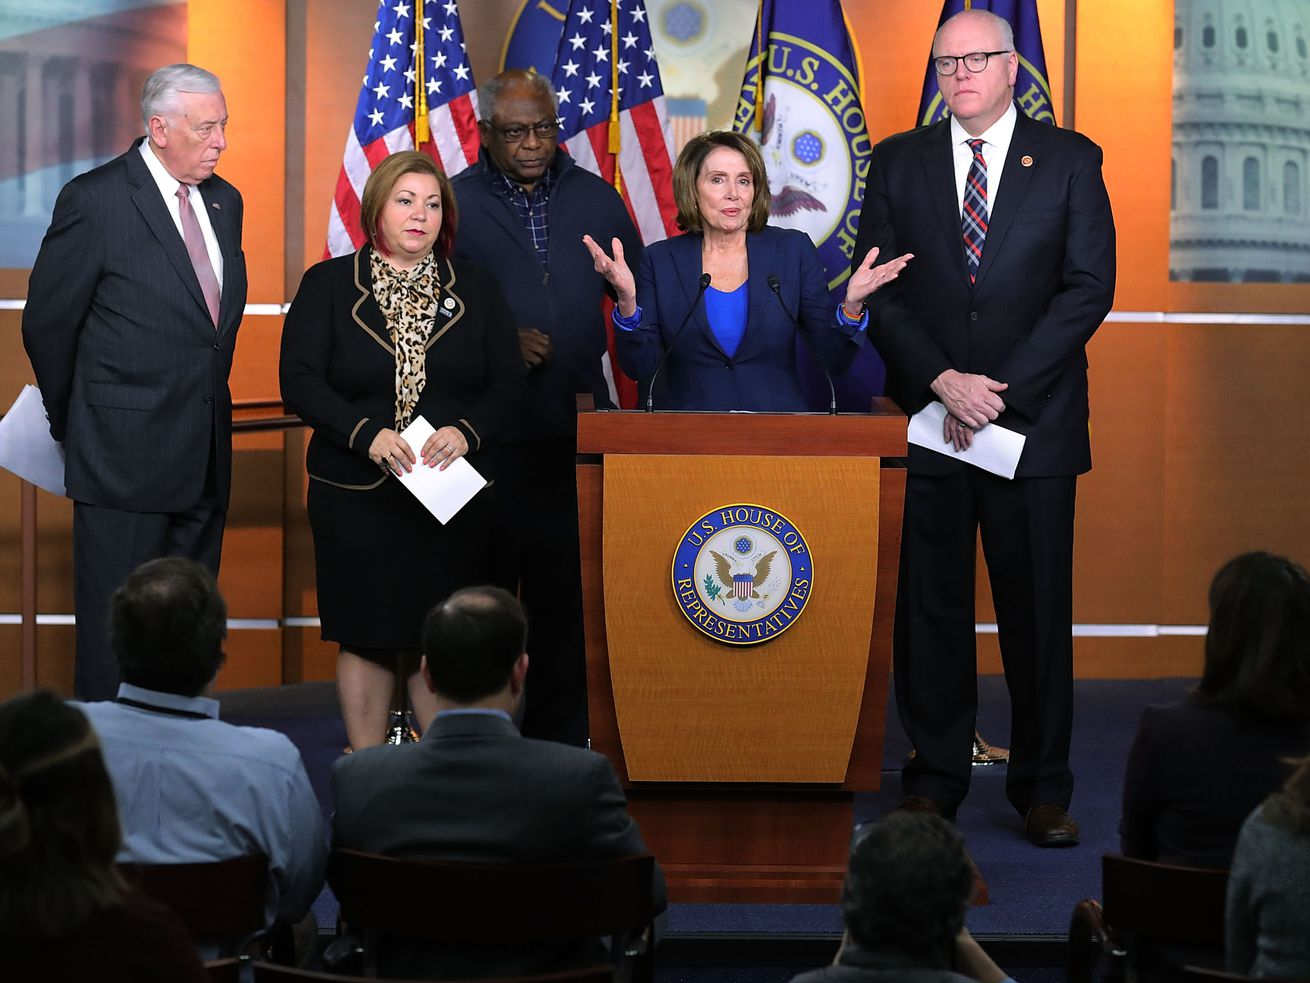 The current House Democratic leadership team during a news conference at the Capitol on January 31, 2018: (L-R) House Minority Whip Steny Hoyer, Rep. Linda Sanchez (D-CA), Rep. James Clyburn (D-SC) and Rep. Joseph Crowley (D-NY). Crowley lost the midterm election to Alexandria Ocasio Cortez.